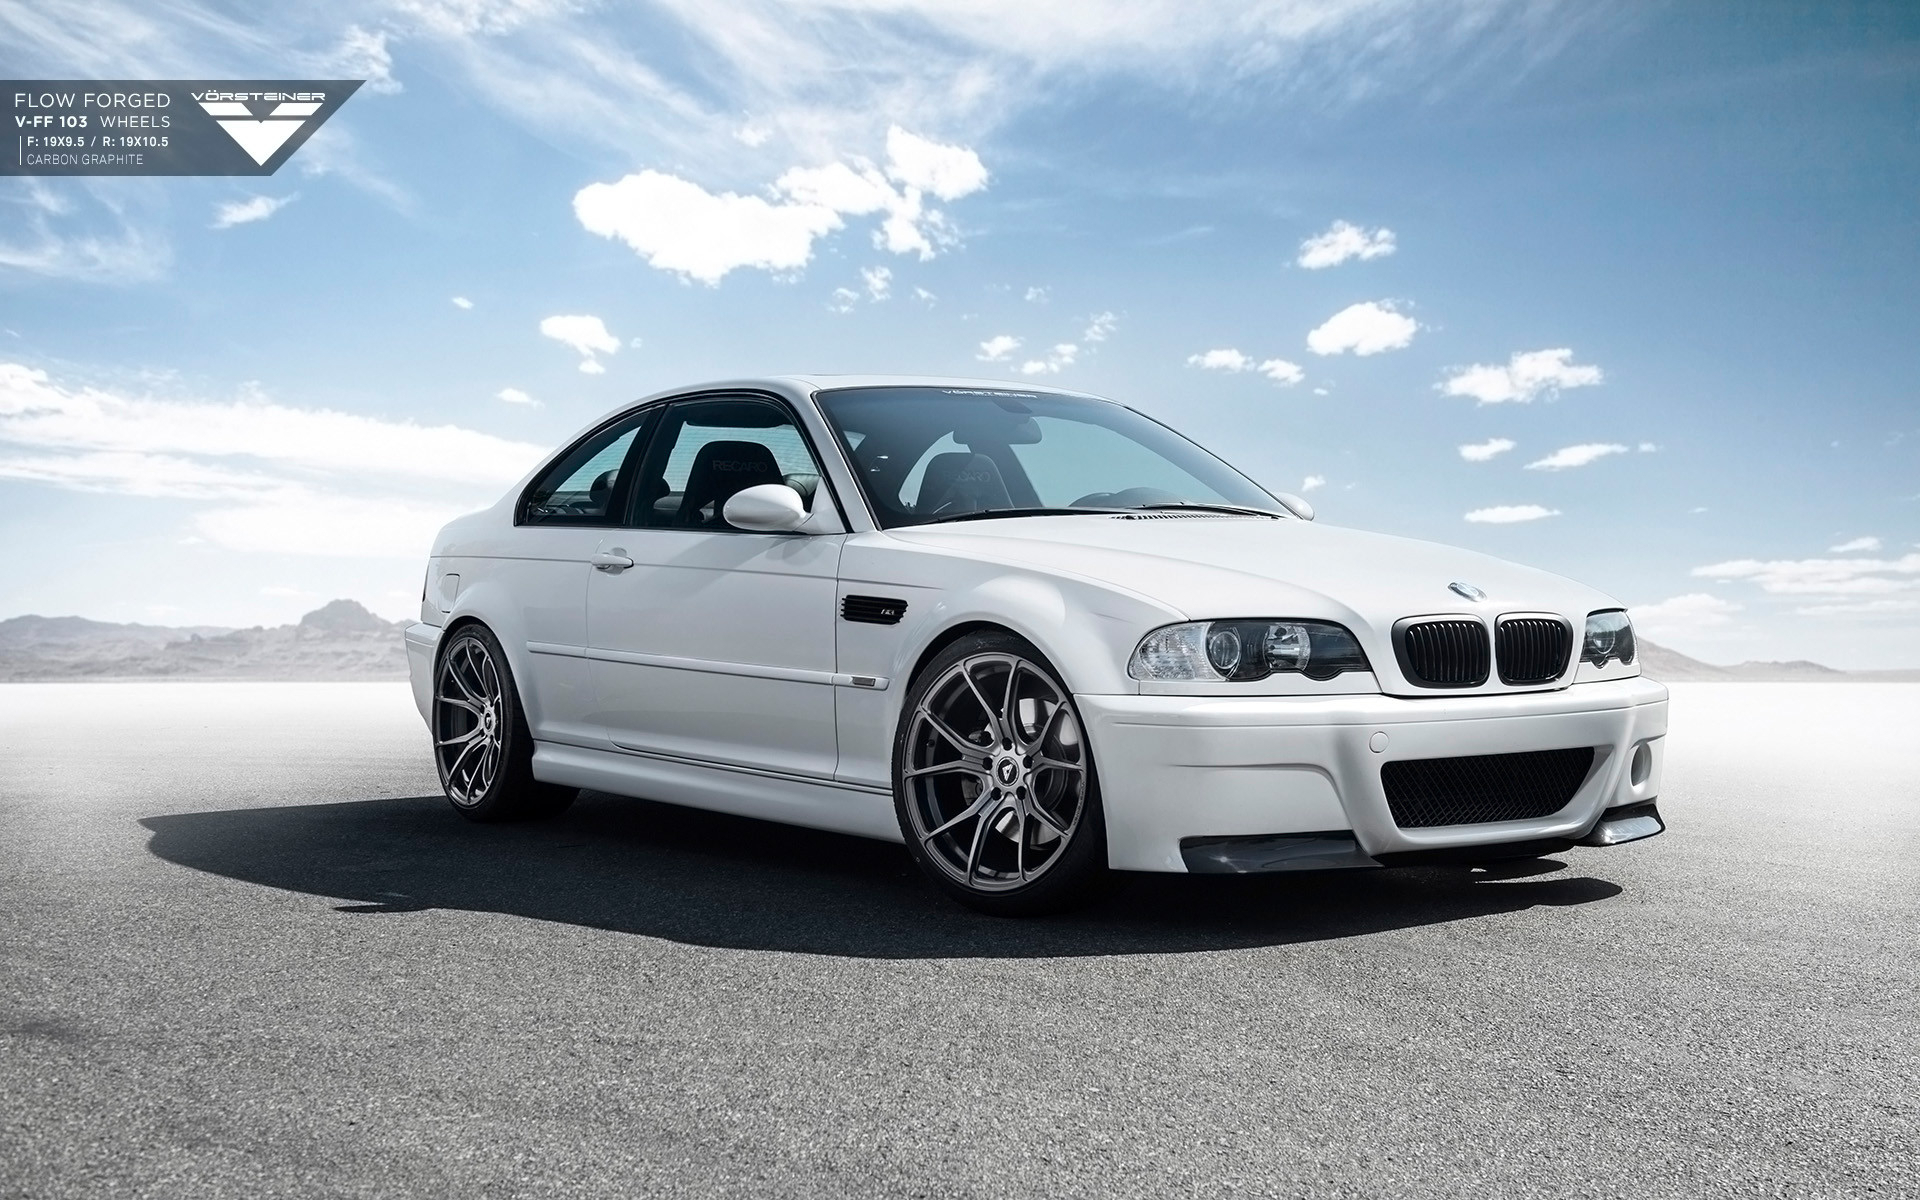 64+ bmw e46 wallpapers on wallpaperplay